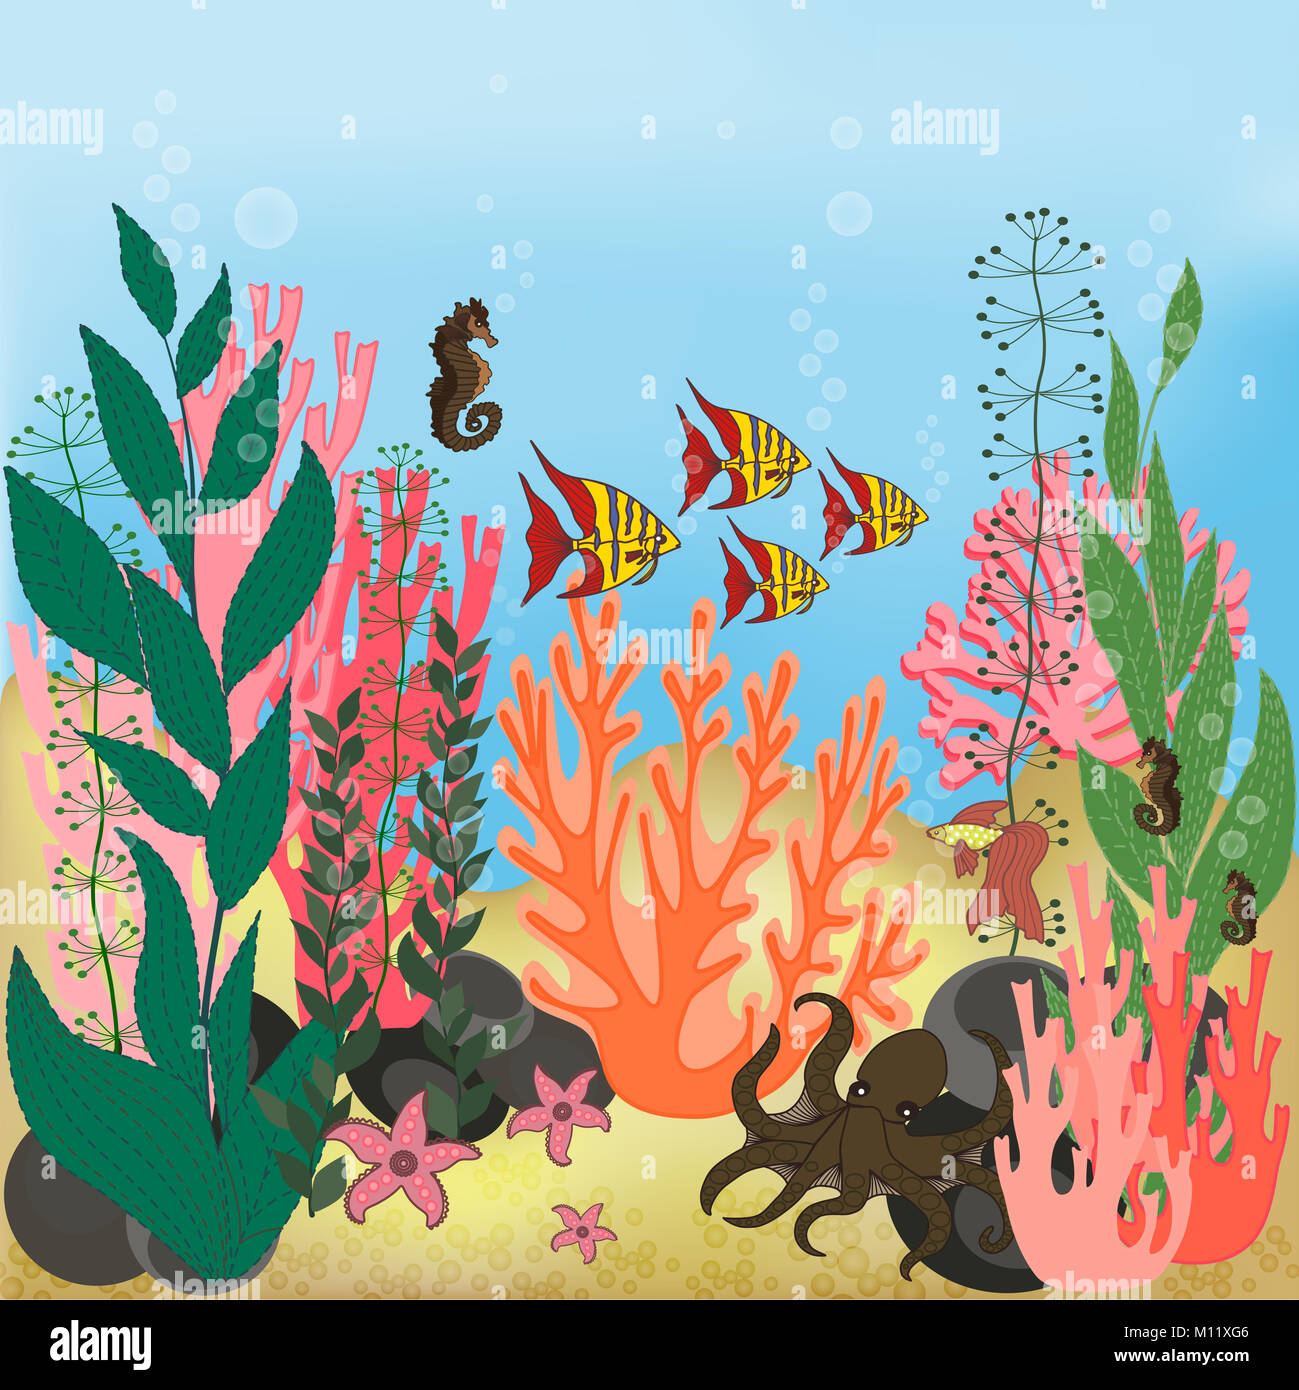 Underwater landscape with water plants and swimming fishes. Stock Photo